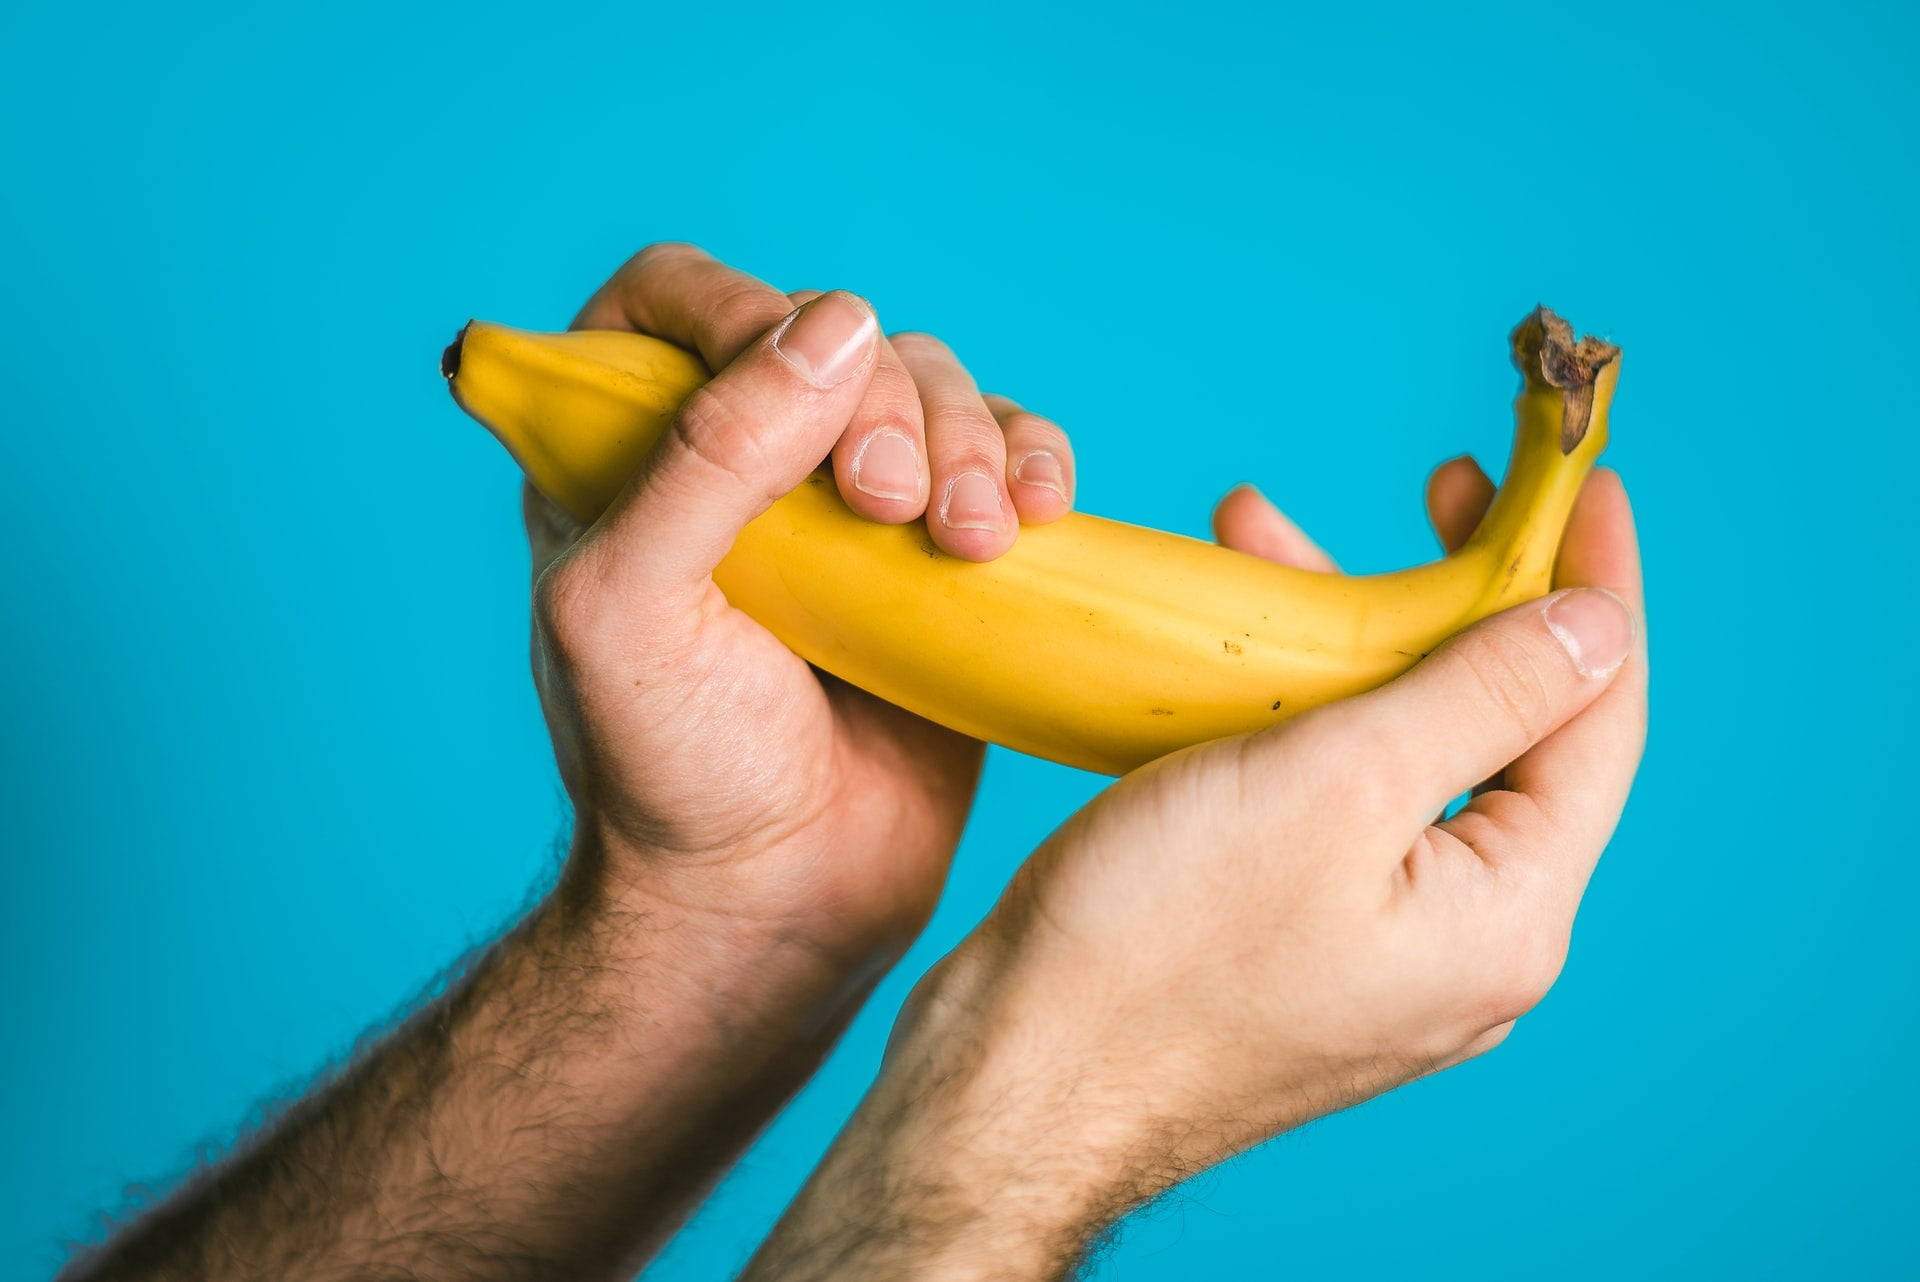 Banana in the hands of a person